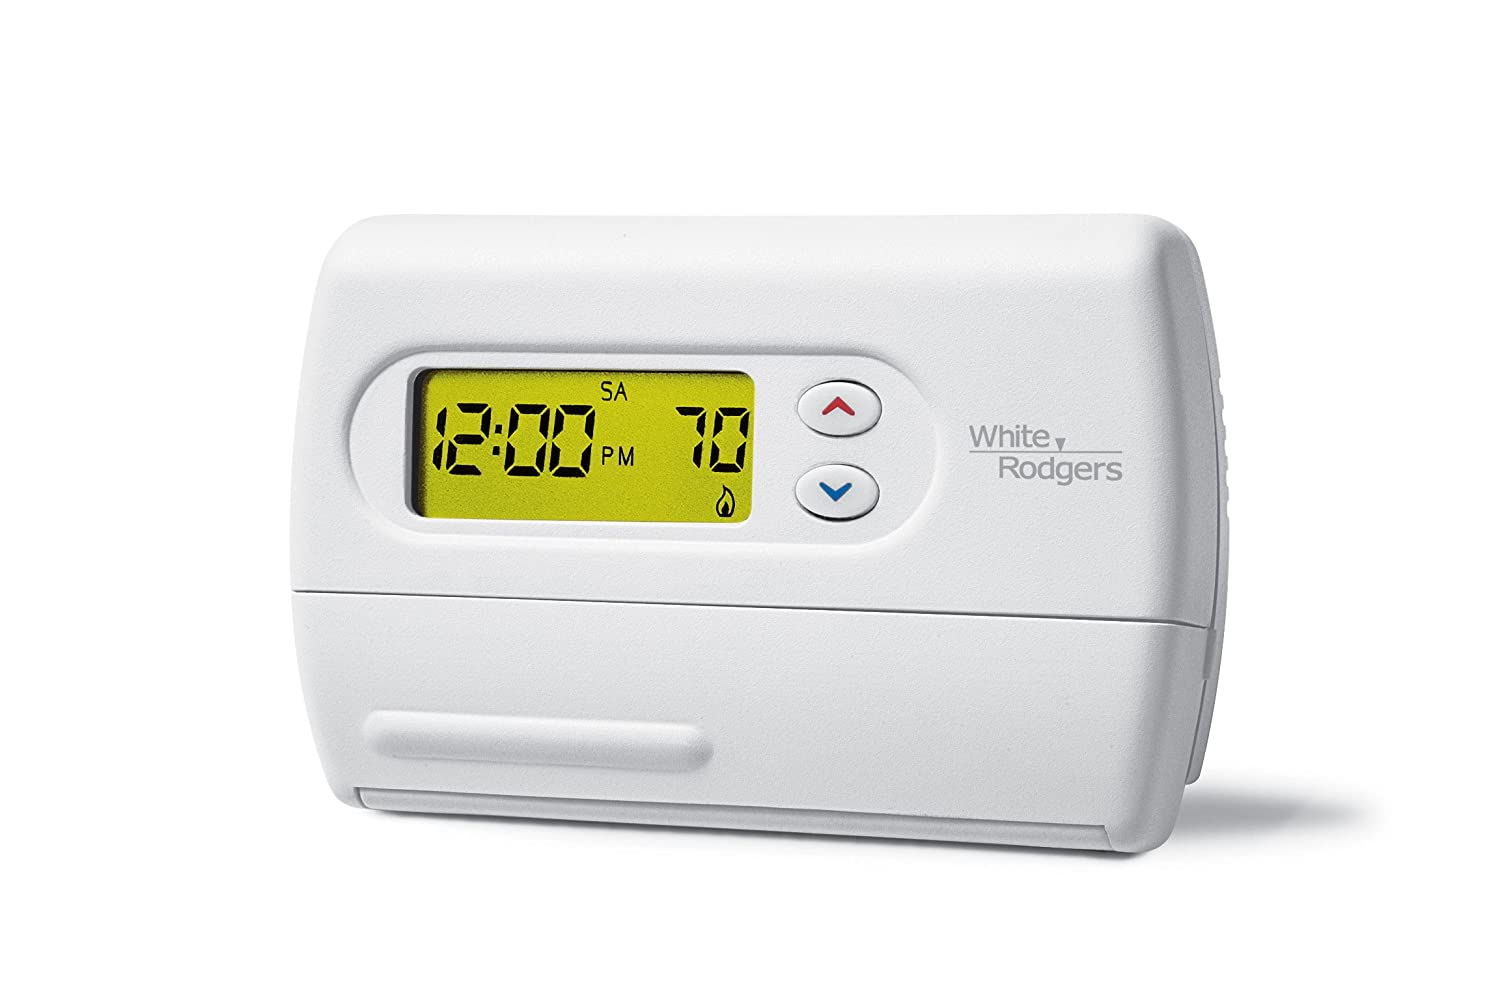 81UWd3nTvxL._SL1500_ emerson 1f80 361 5 1 1 day programmable thermostat for single white rodgers thermostat wiring diagram 1f80-361 at mifinder.co